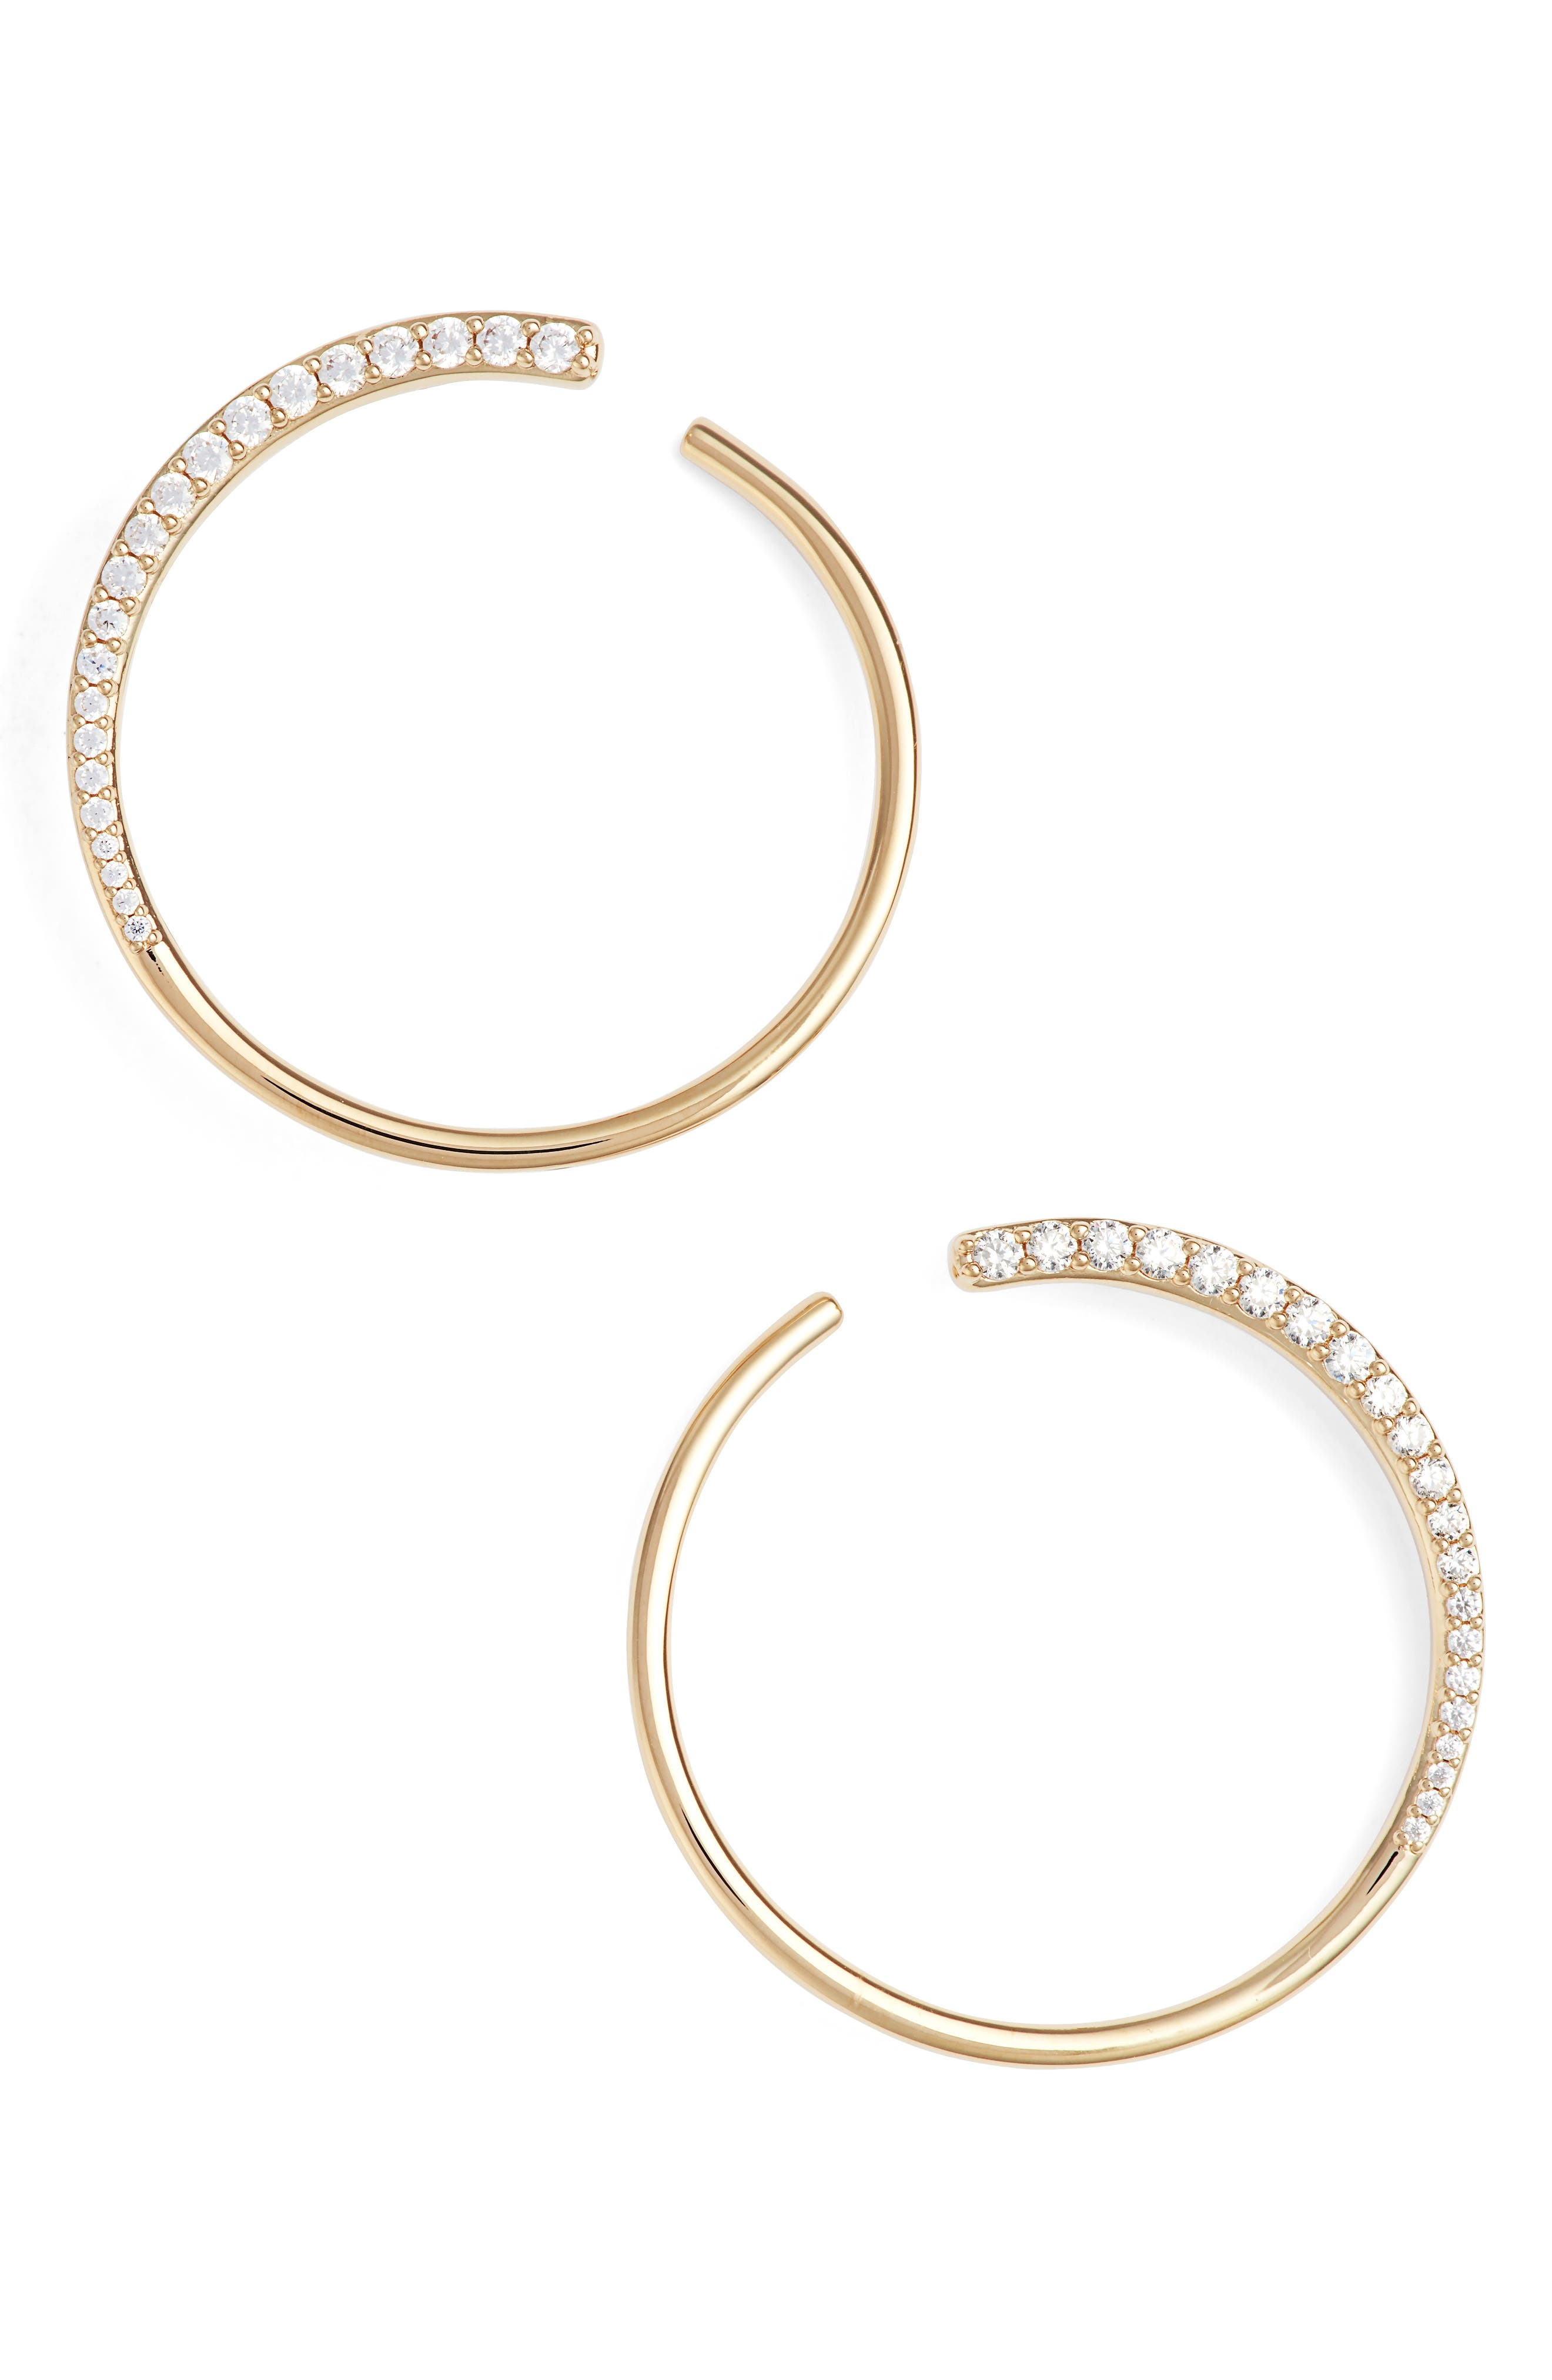 Half Sparkle Hoops,                             Main thumbnail 1, color,                             Gold/ Clear